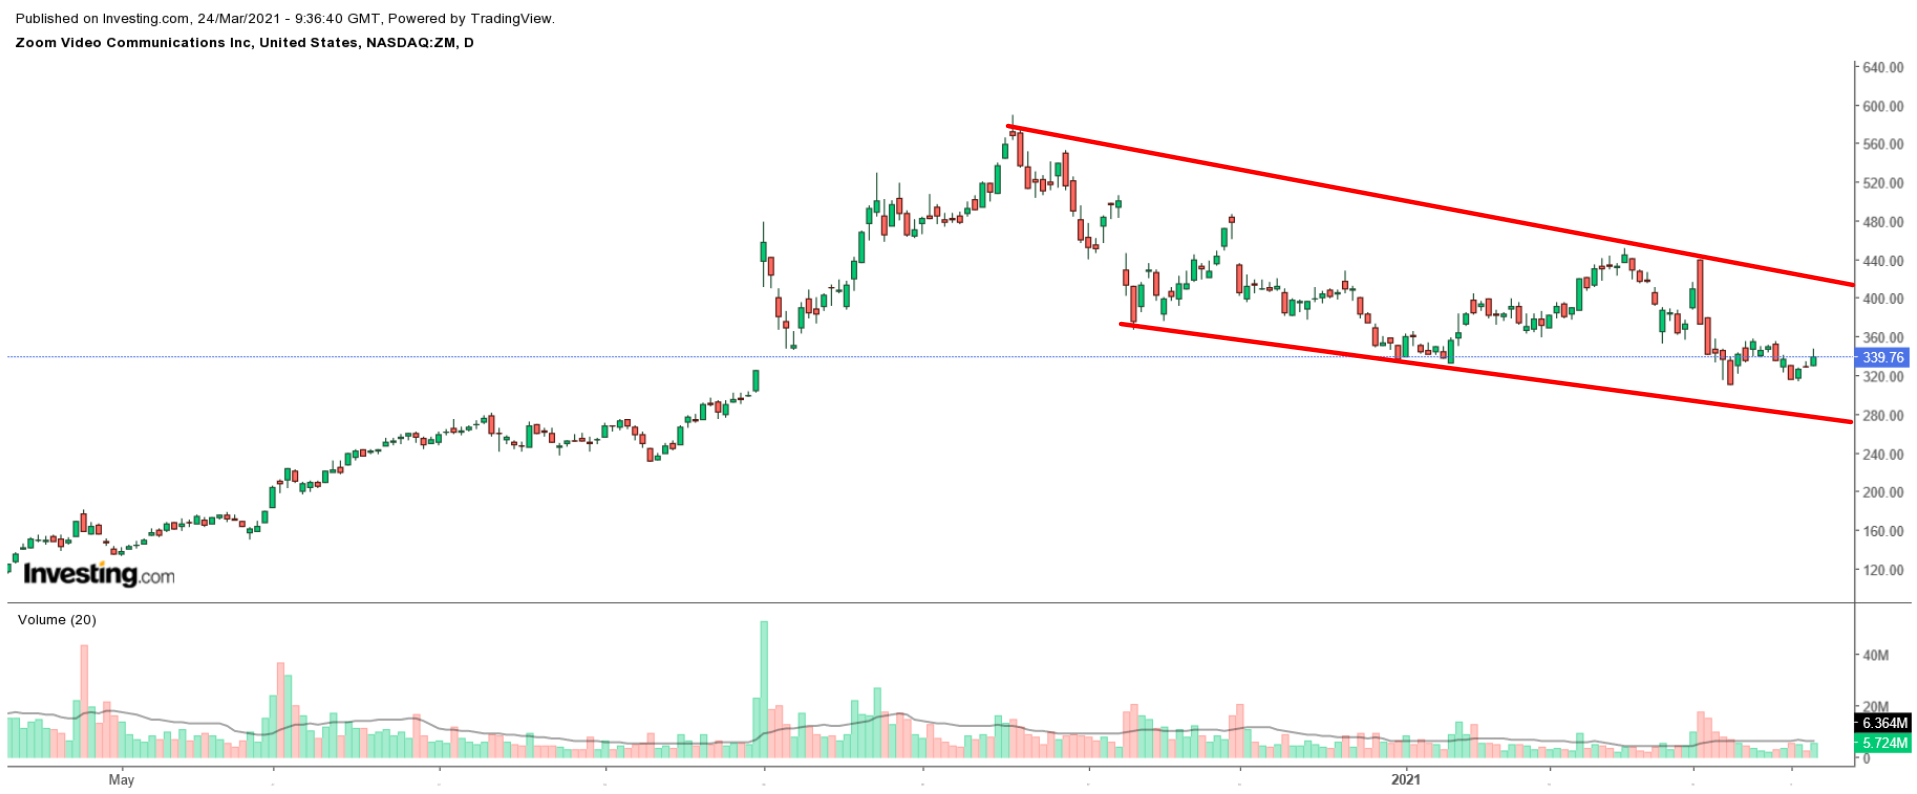 Zoom Video Daily Chart